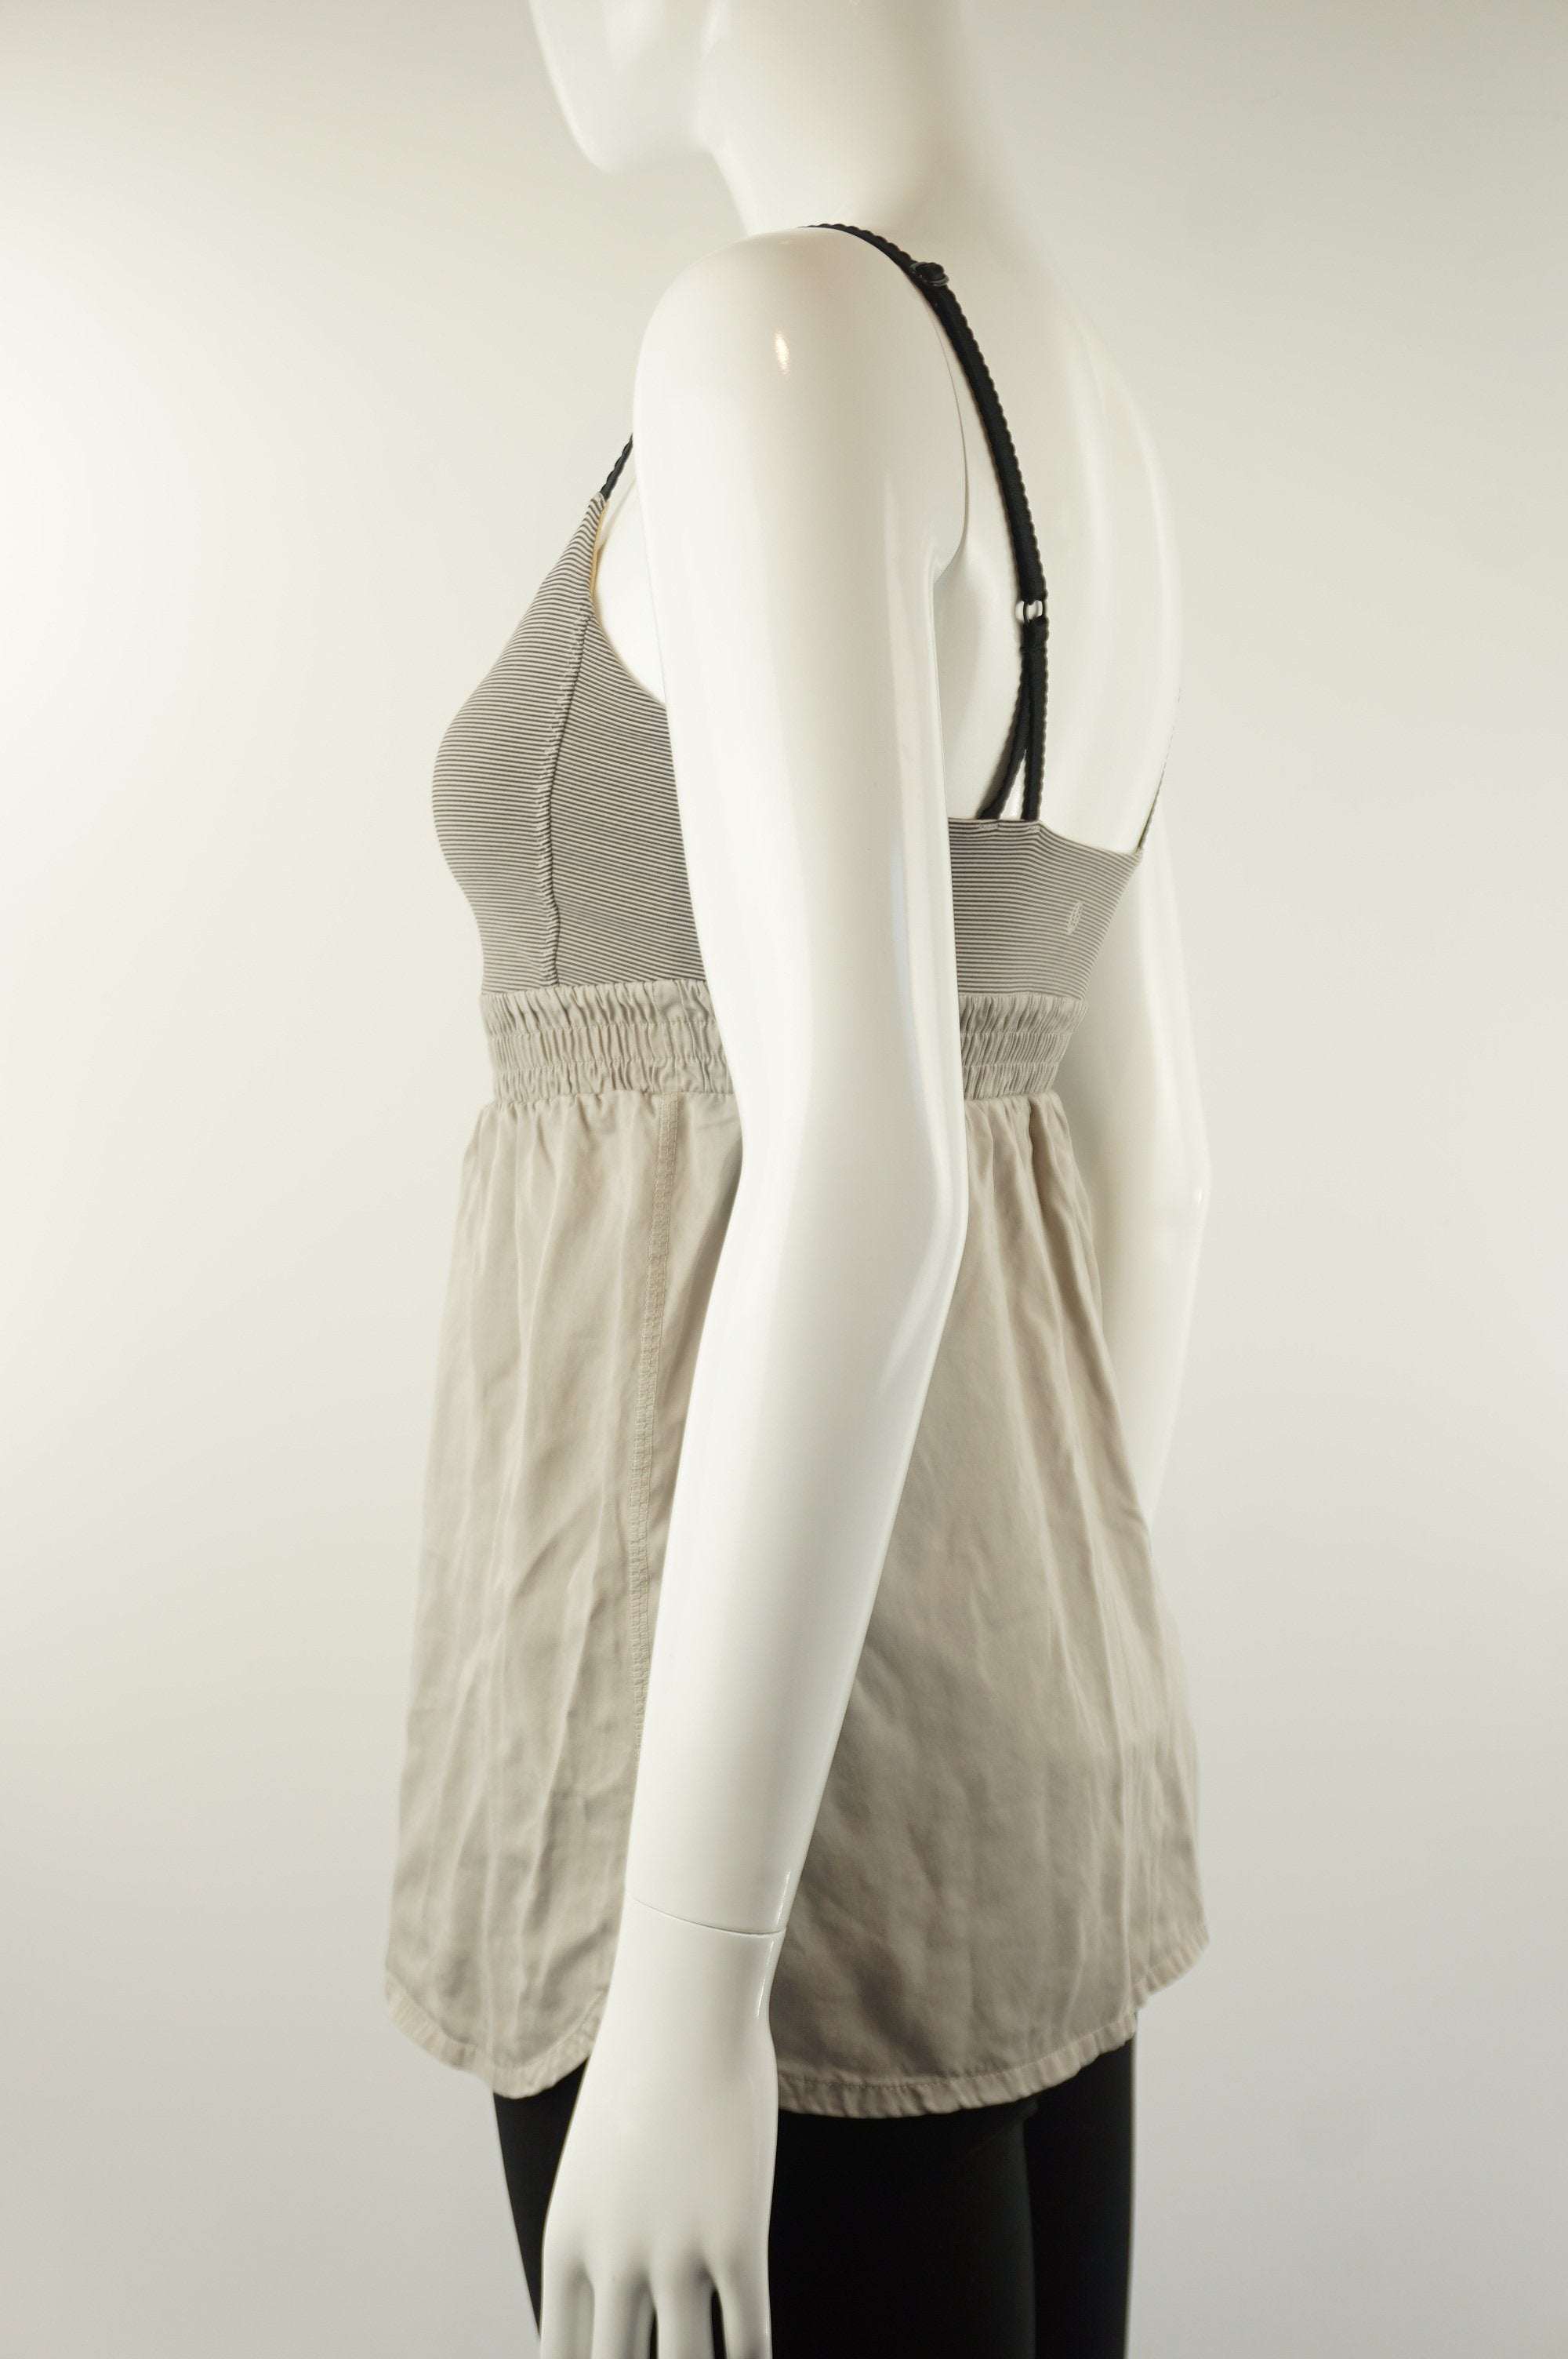 Lululemon Athletic Top, Women or girls top. Lululemon size 6. https://info.lululemon.com/help/size-chart, Grey, Yellow, Nylon, Lycra, and Spandex, Yoga, yoga pants, women's athletic wear, women's work out clothes, women's comfortable pants, fitness, fit